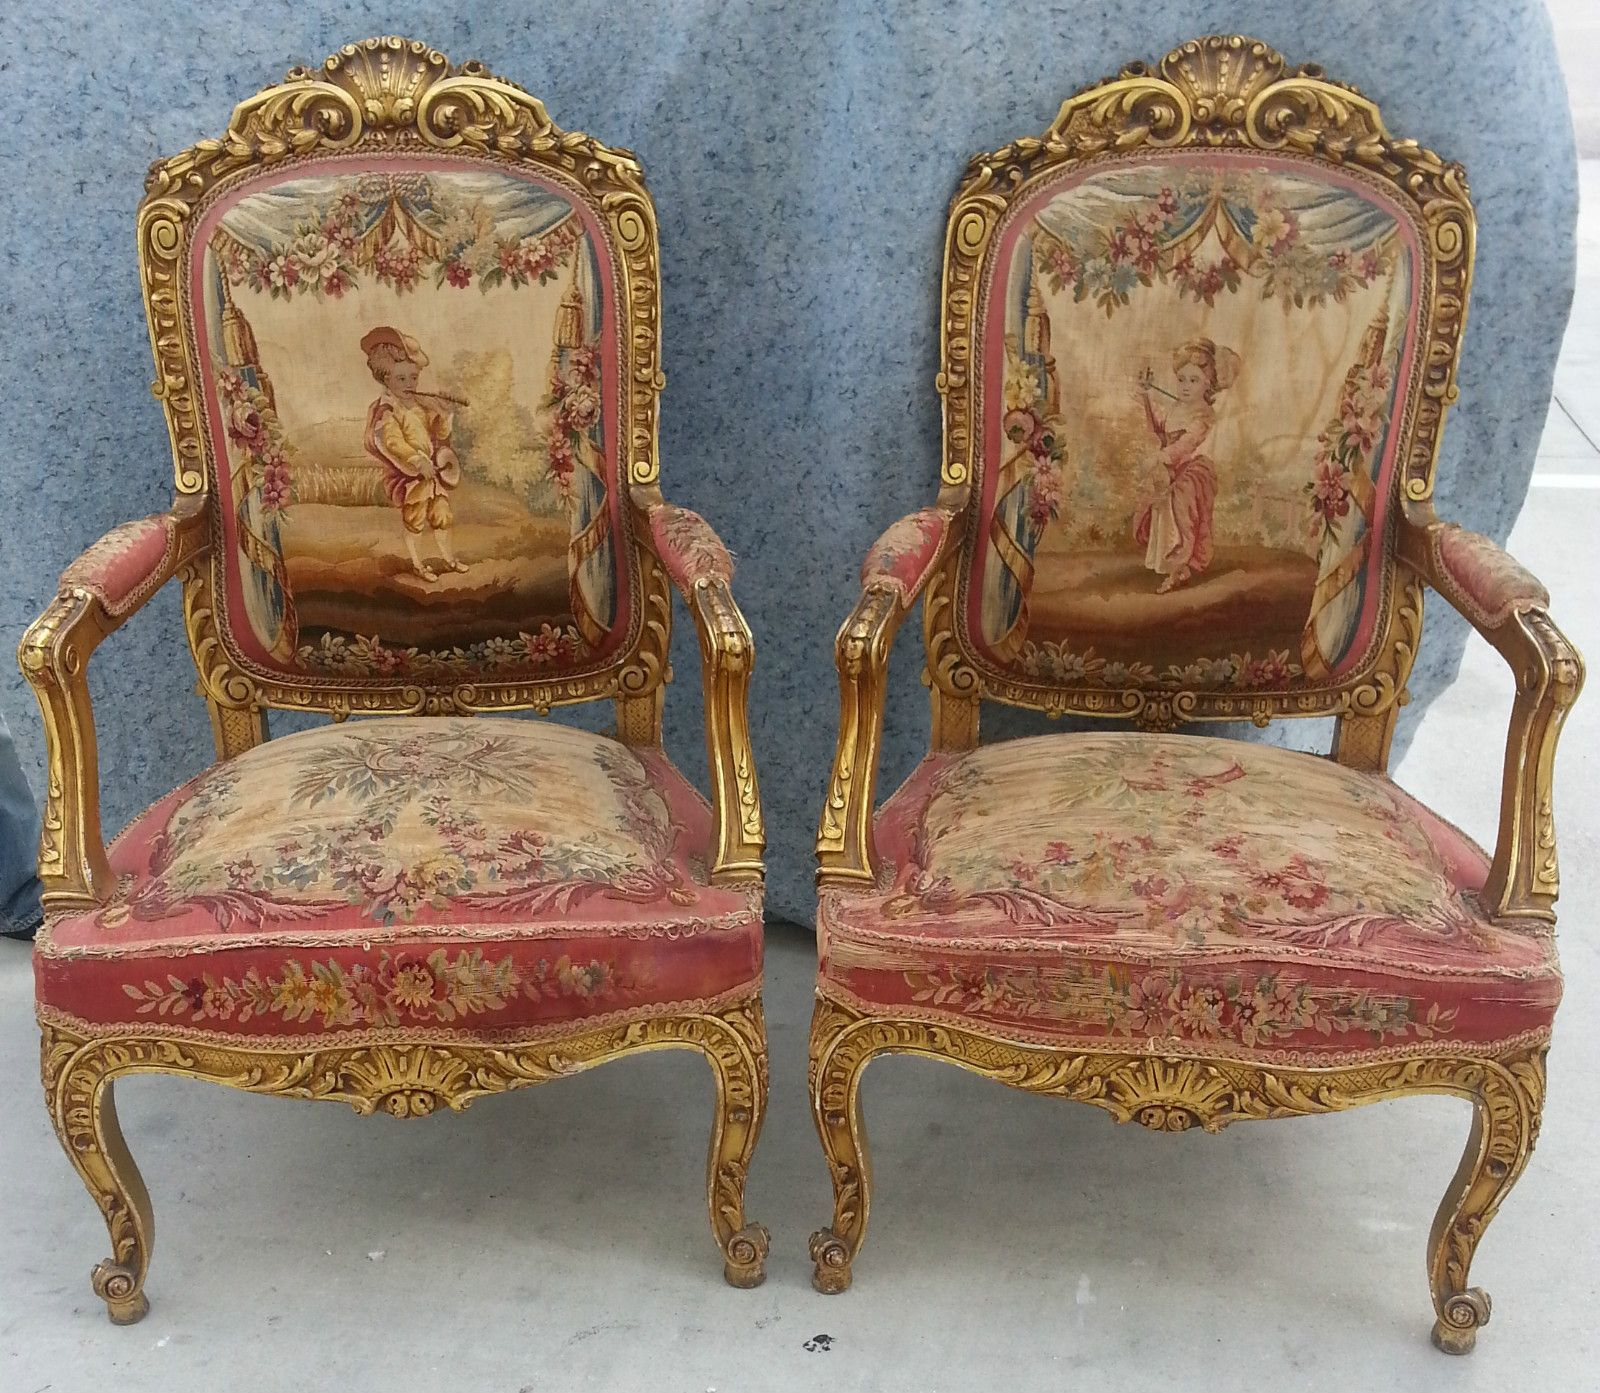 Best French Aubusson Tapestry Arm Chairs Antique French 400 x 300